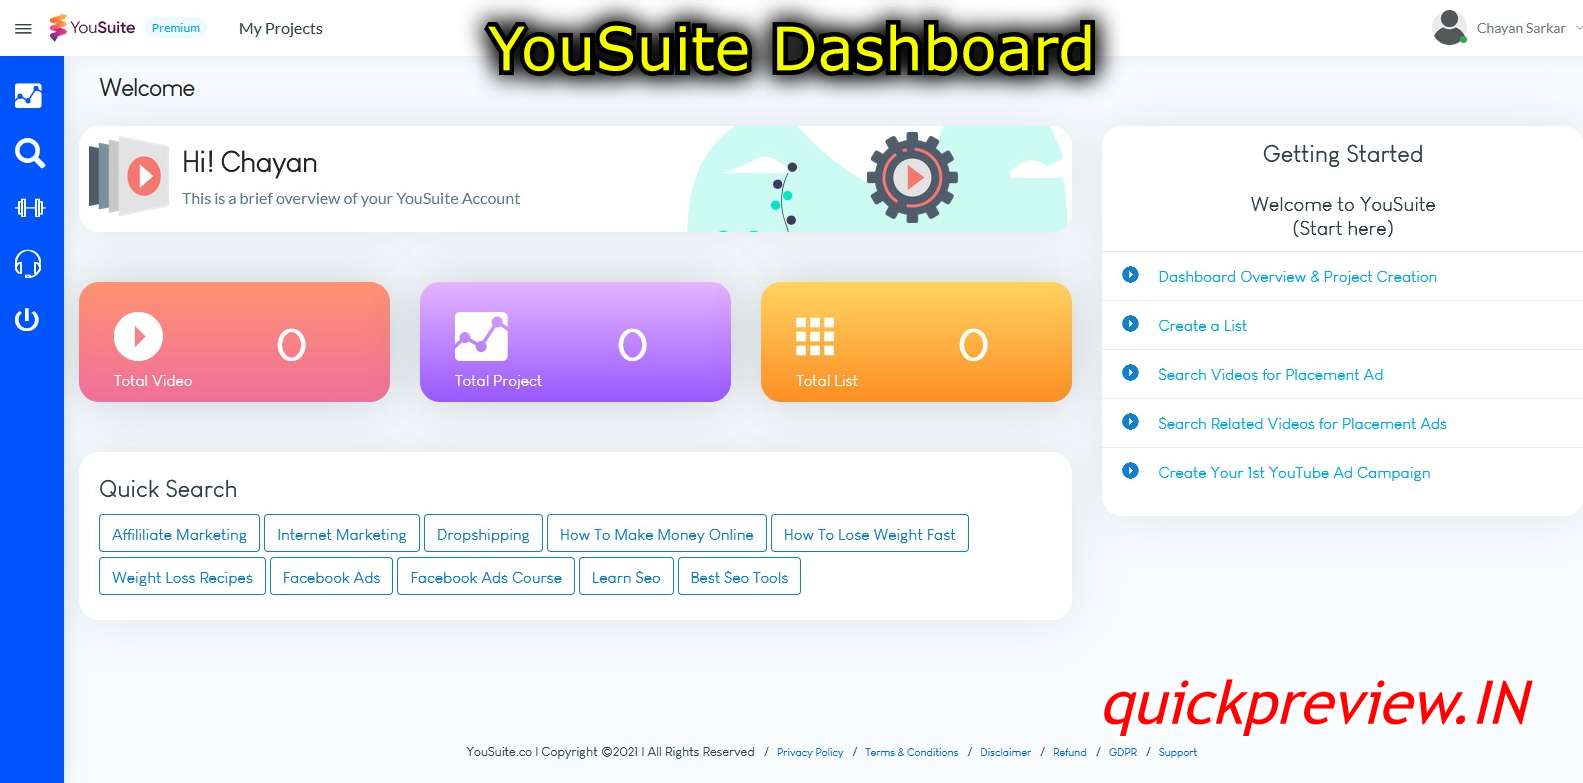 YouSuite Dashboard